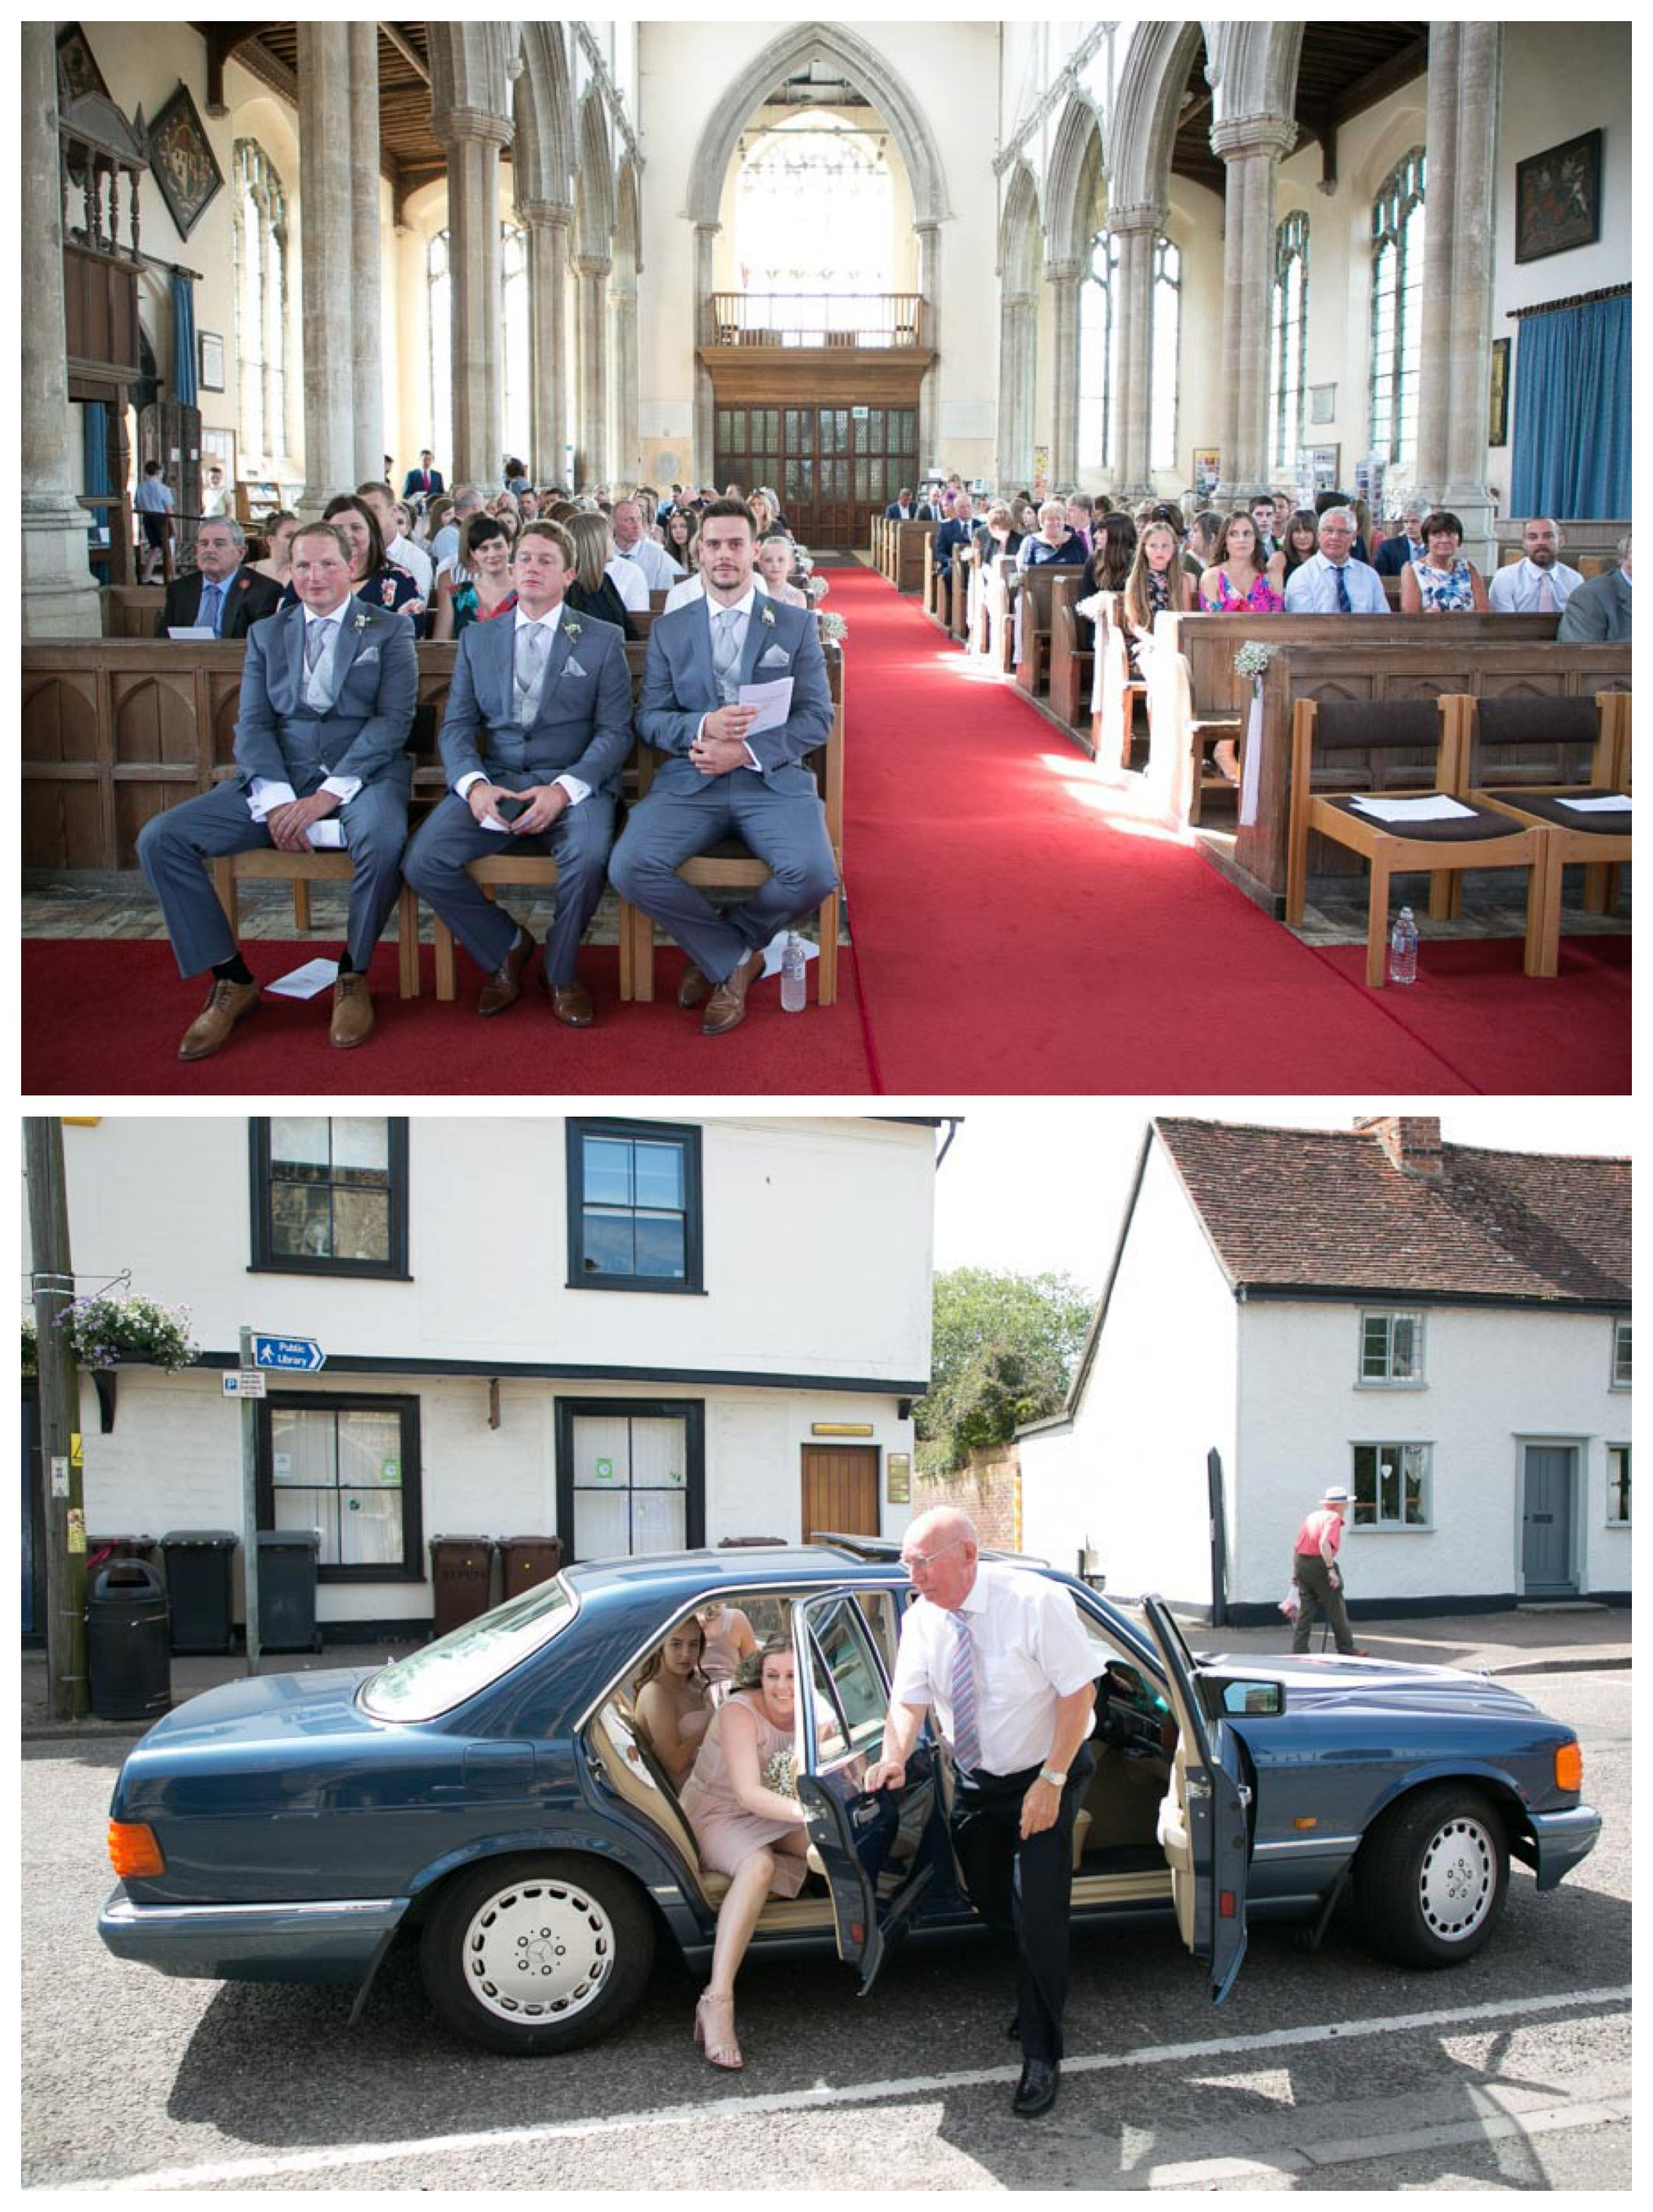 groom waiting inside church and bridesmaids arriving in car